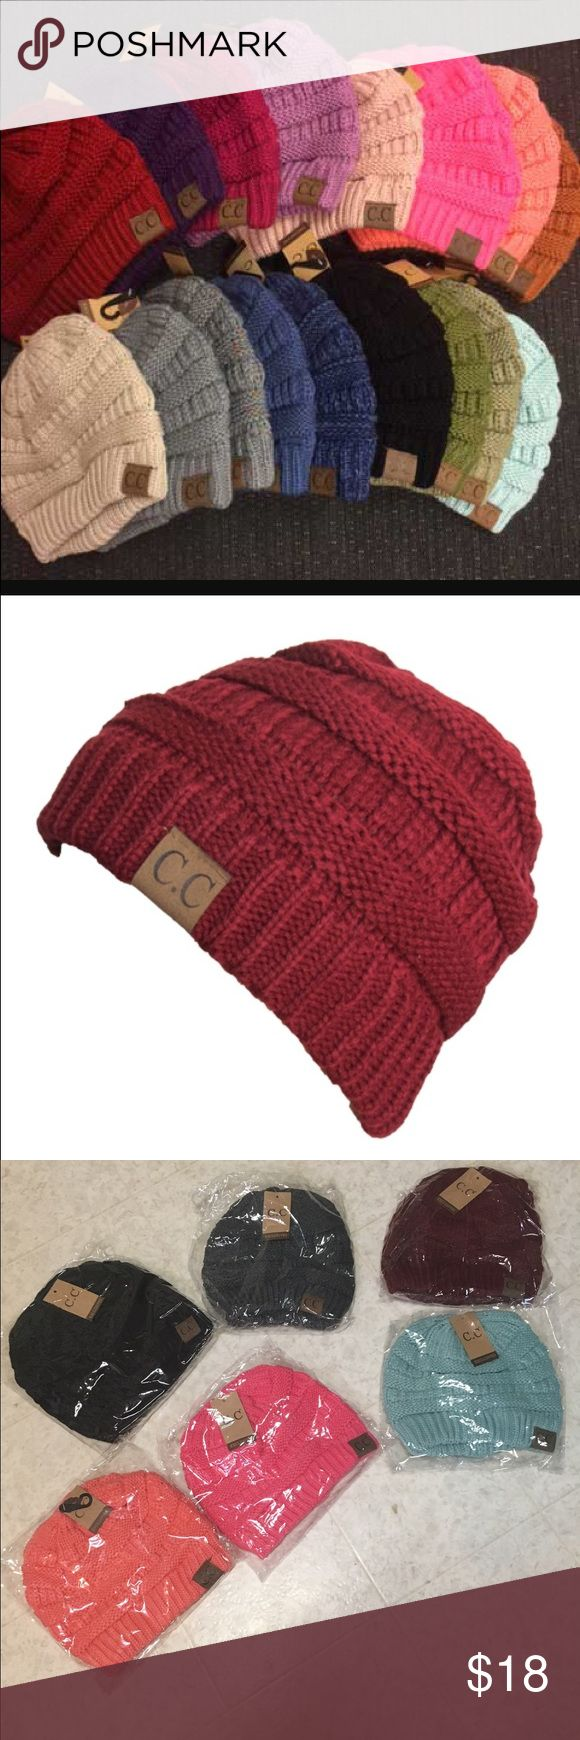 Maroon / burgundy C.C. Beanie. ****Listing is for one maroon cc beanie**** NEW! Last pic it's the top right dark color, C.C. Accessories Hats